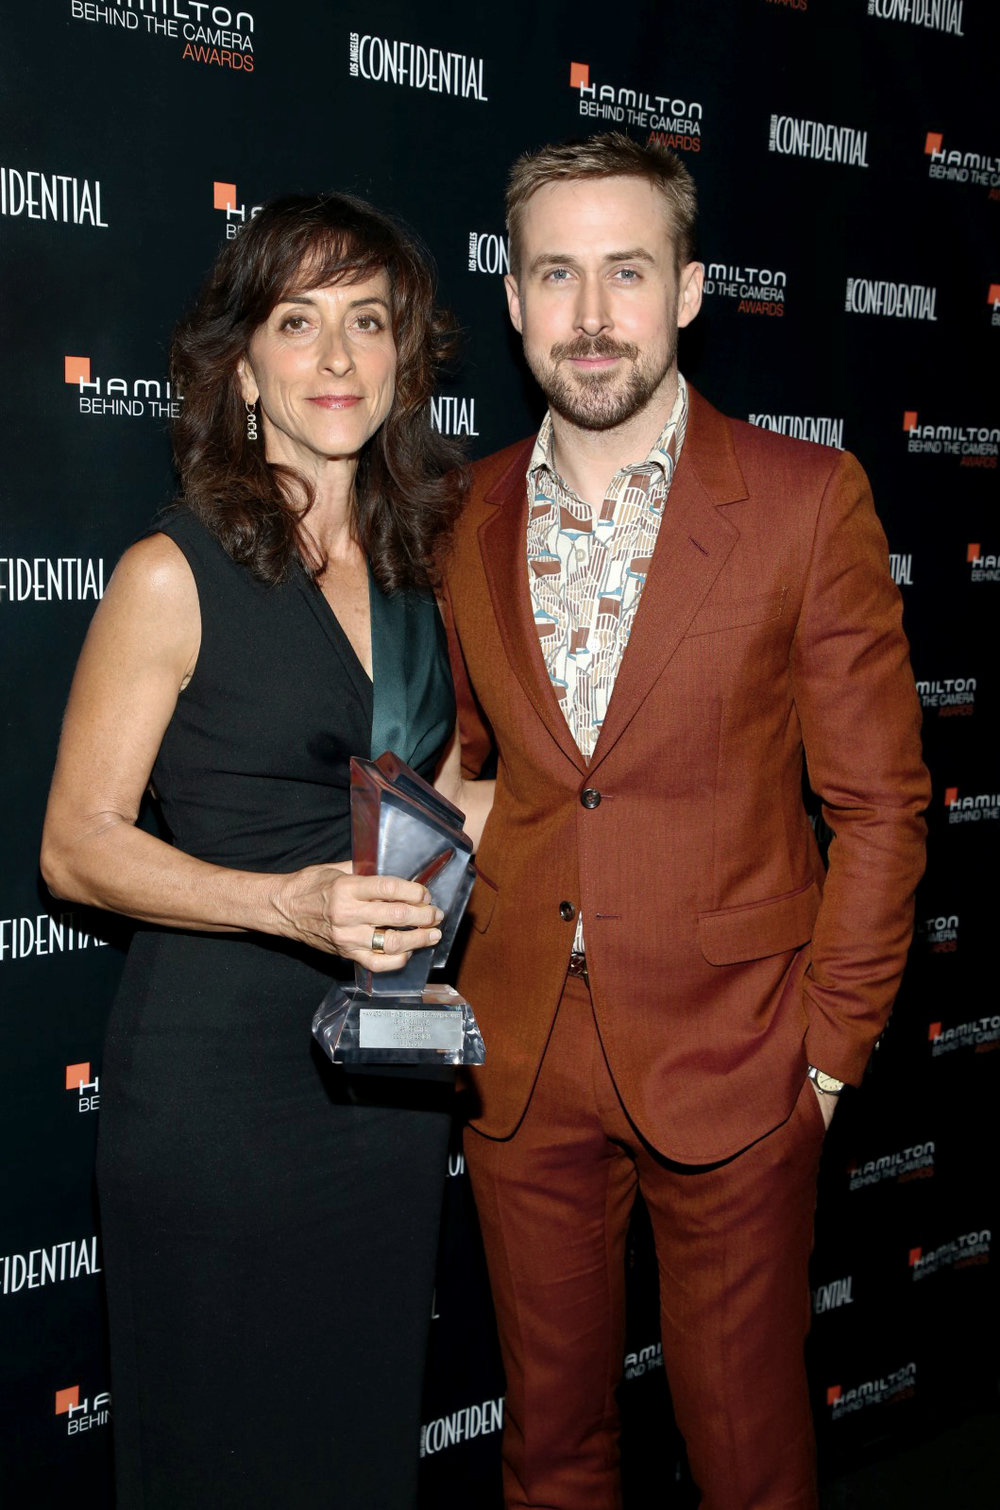 Hamilton Behind the Camera Awards 2018 - Mary Zophres & Ryan Gosling - Backstage.